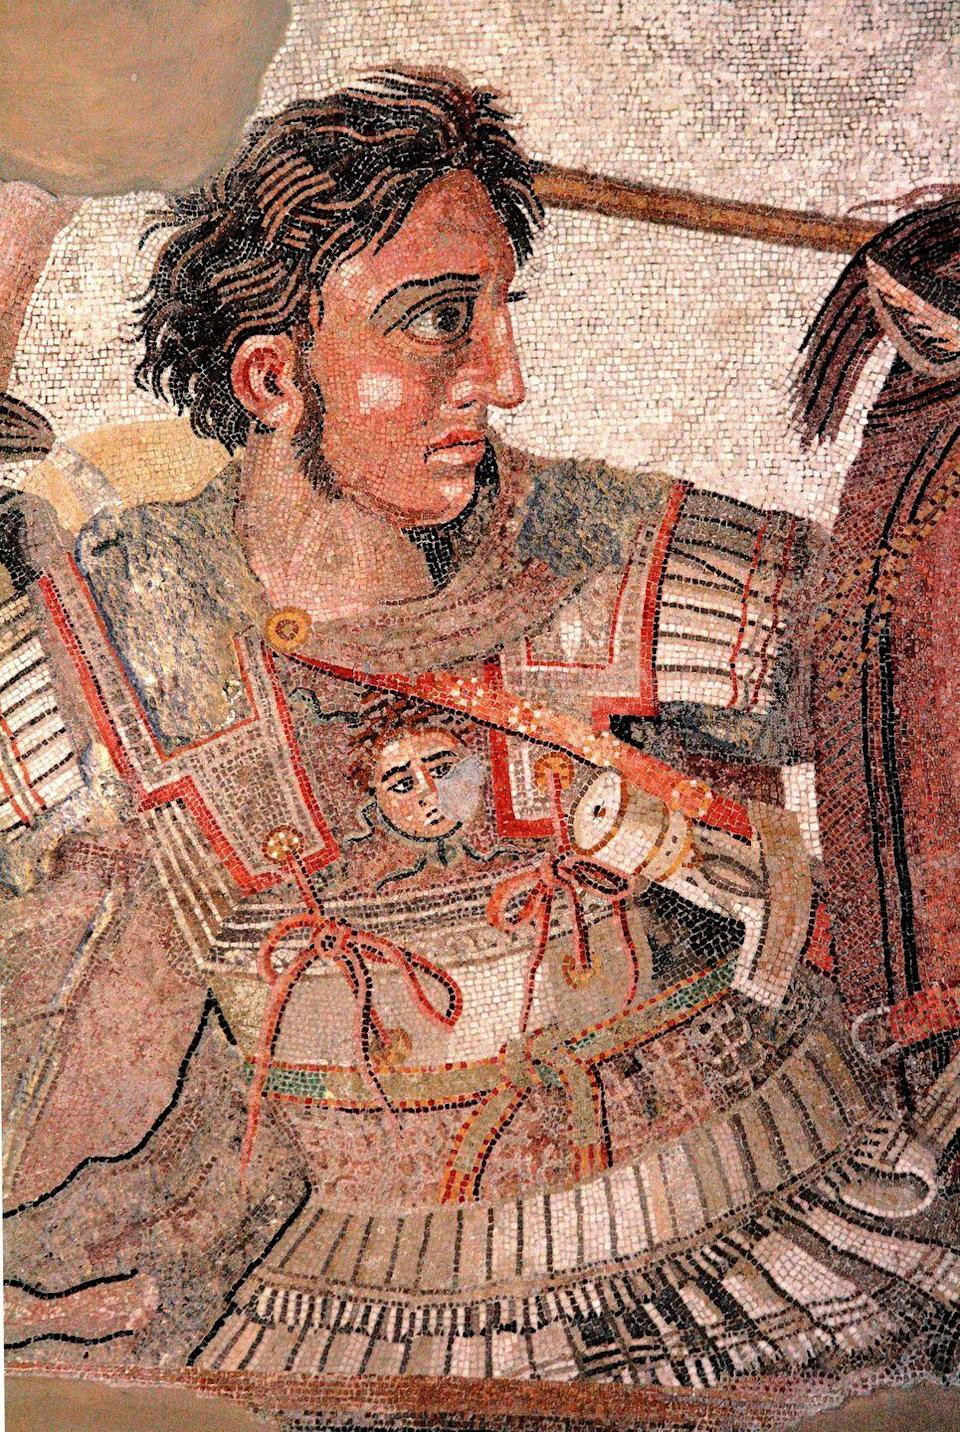 """<p>Okay, maybe he's not a famous face now, but we can promise you he was famous when he was conquering the Mediterranean, Egypt, the Middle East, and parts of Asia during the 4th century B.C.. According to <a href=""""https://www.nationalgeographic.org/encyclopedia/alexander-great/"""" rel=""""nofollow noopener"""" target=""""_blank"""" data-ylk=""""slk:National Geographic"""" class=""""link rapid-noclick-resp"""">National Geographic</a>, historians think he had heterochromia with one blue eye and one brown.</p>"""